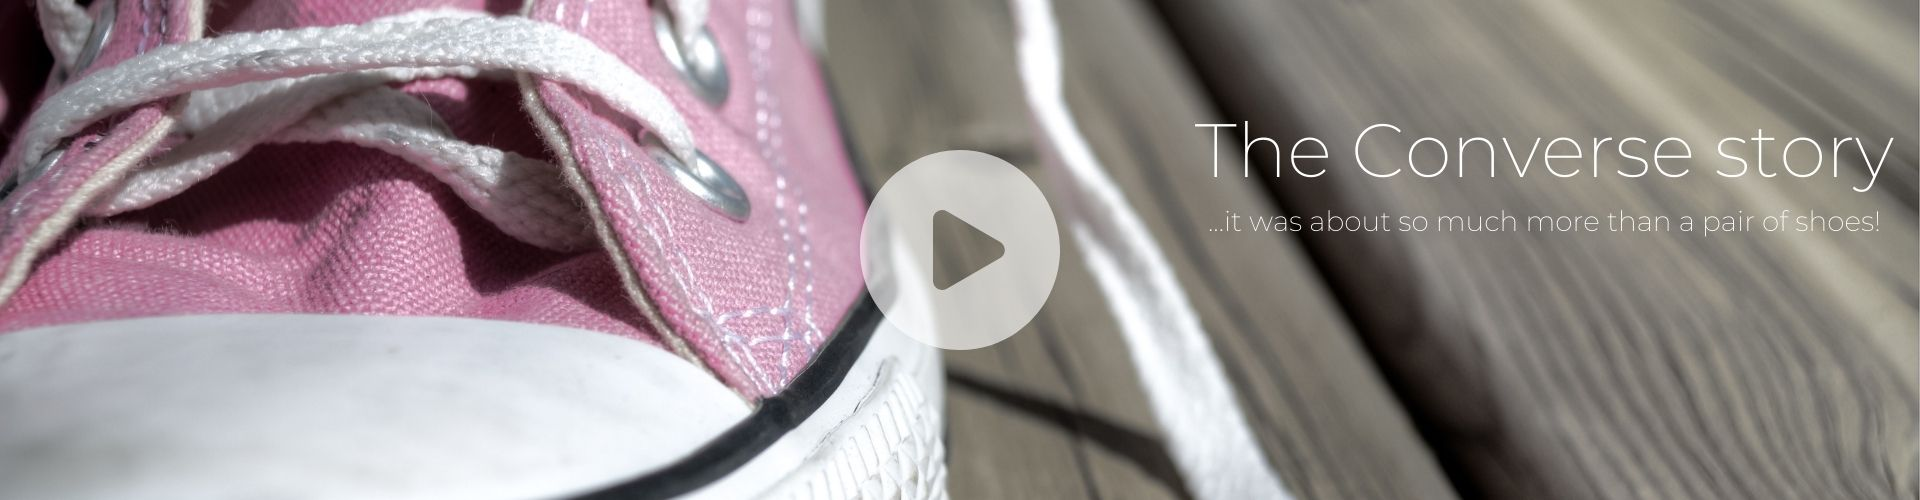 The converse story YouTube